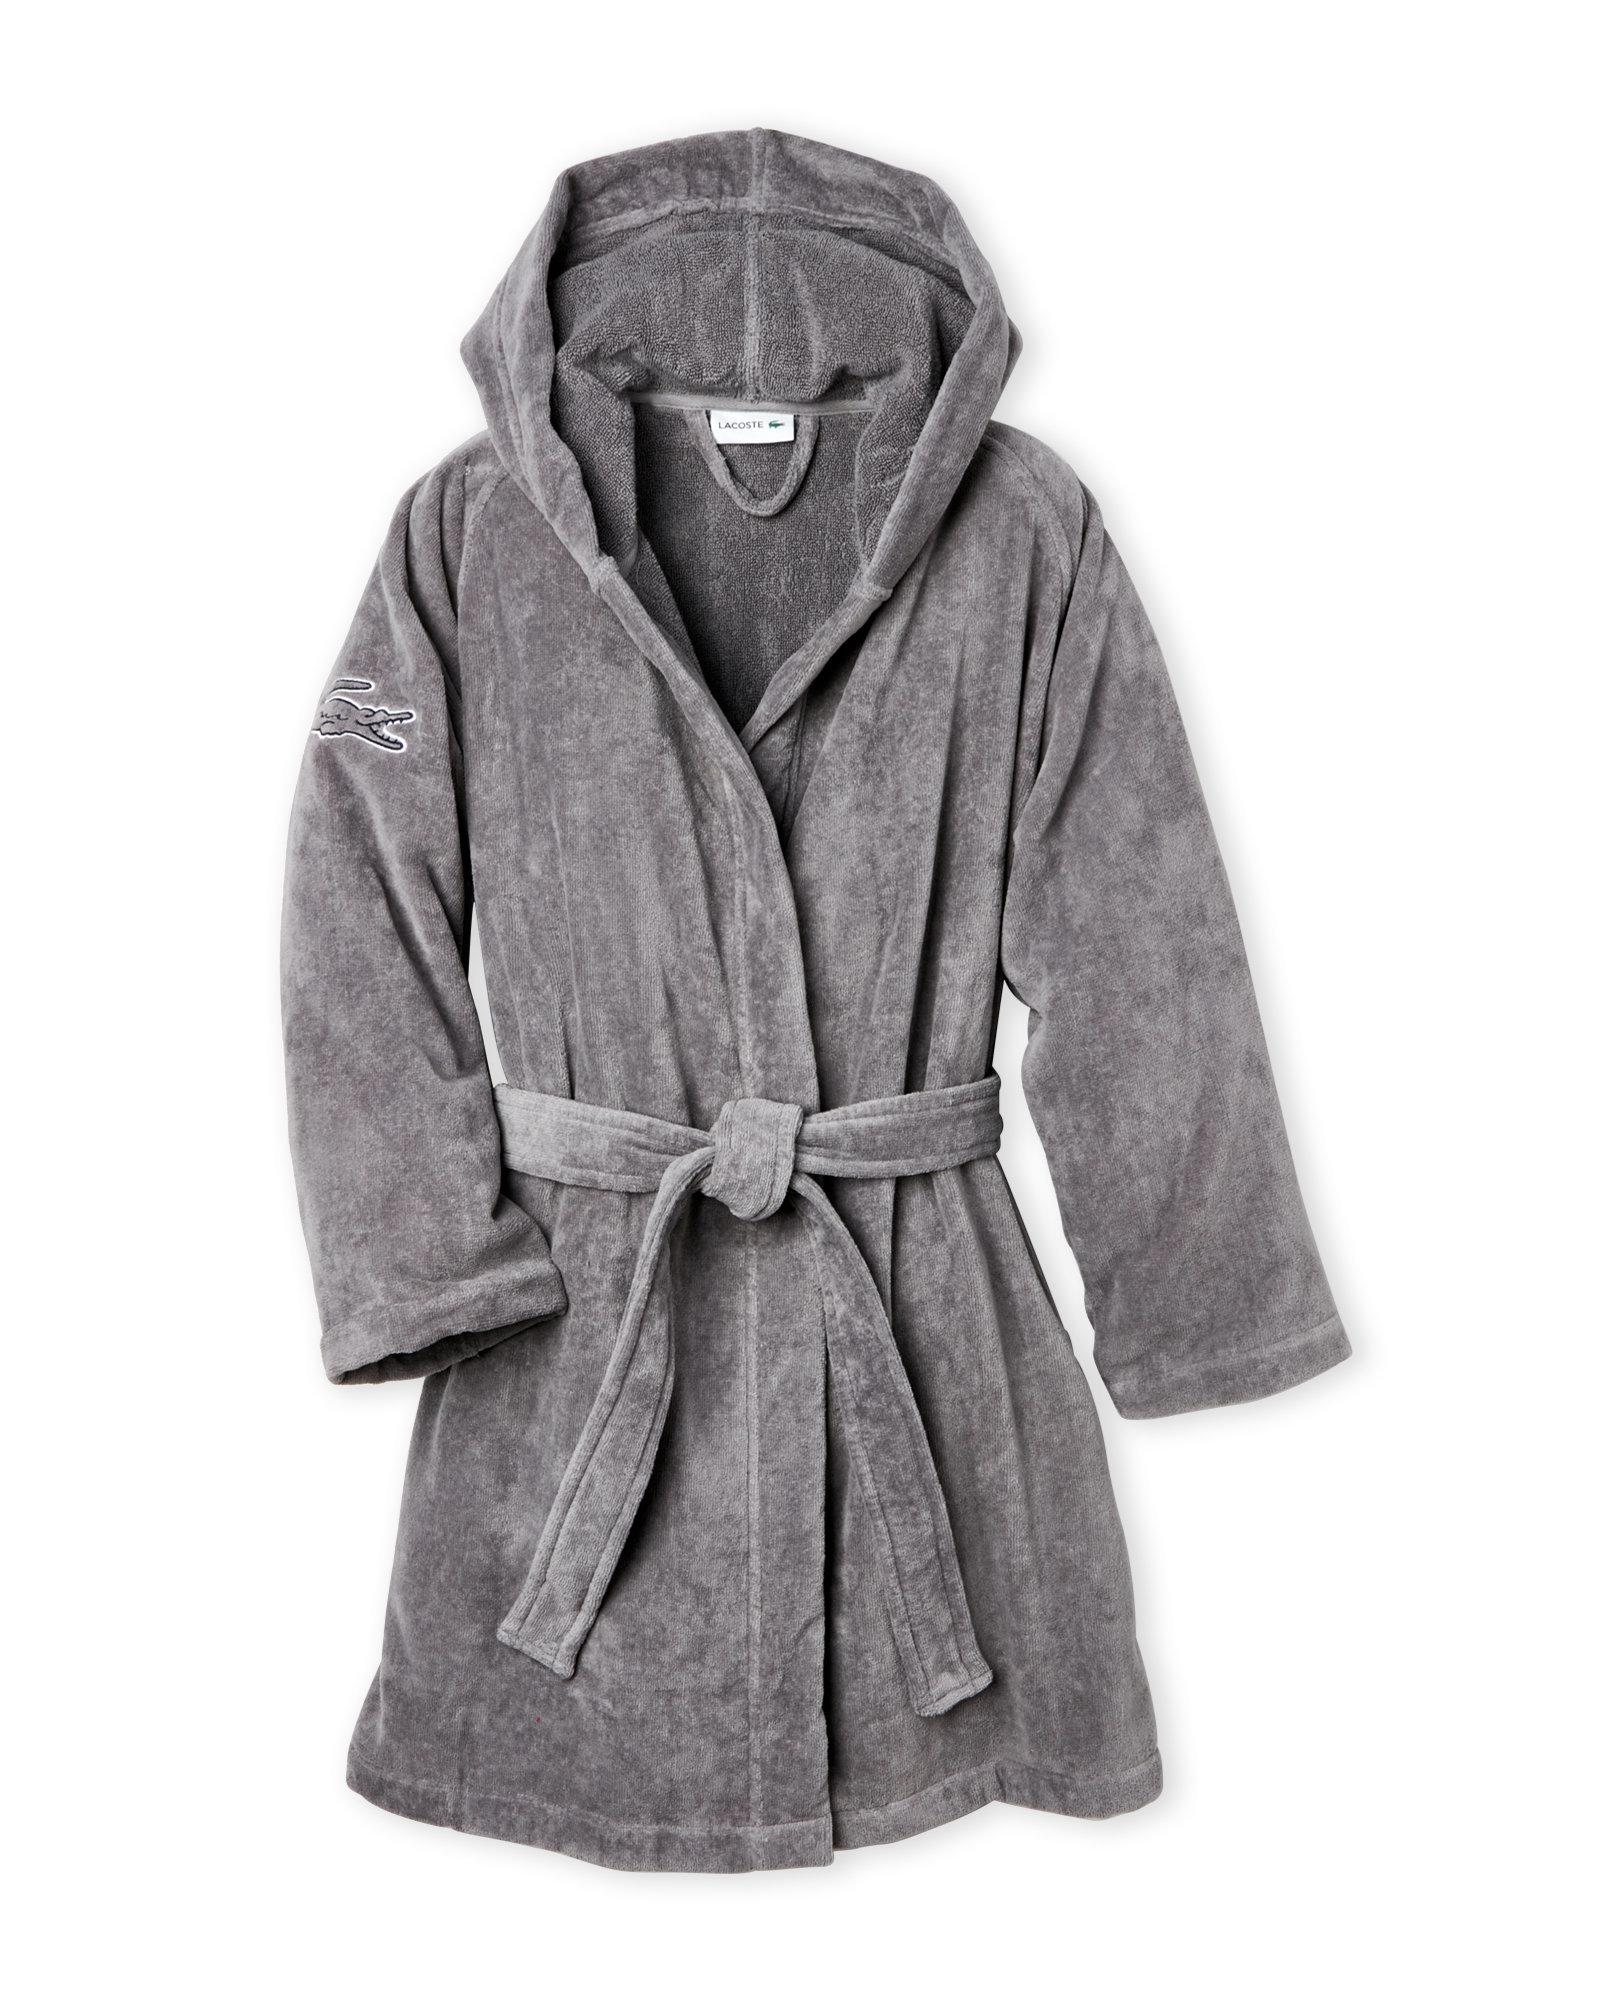 Lyst - Lacoste Hooded Fairplay Robe in Gray dd6b3c3e8